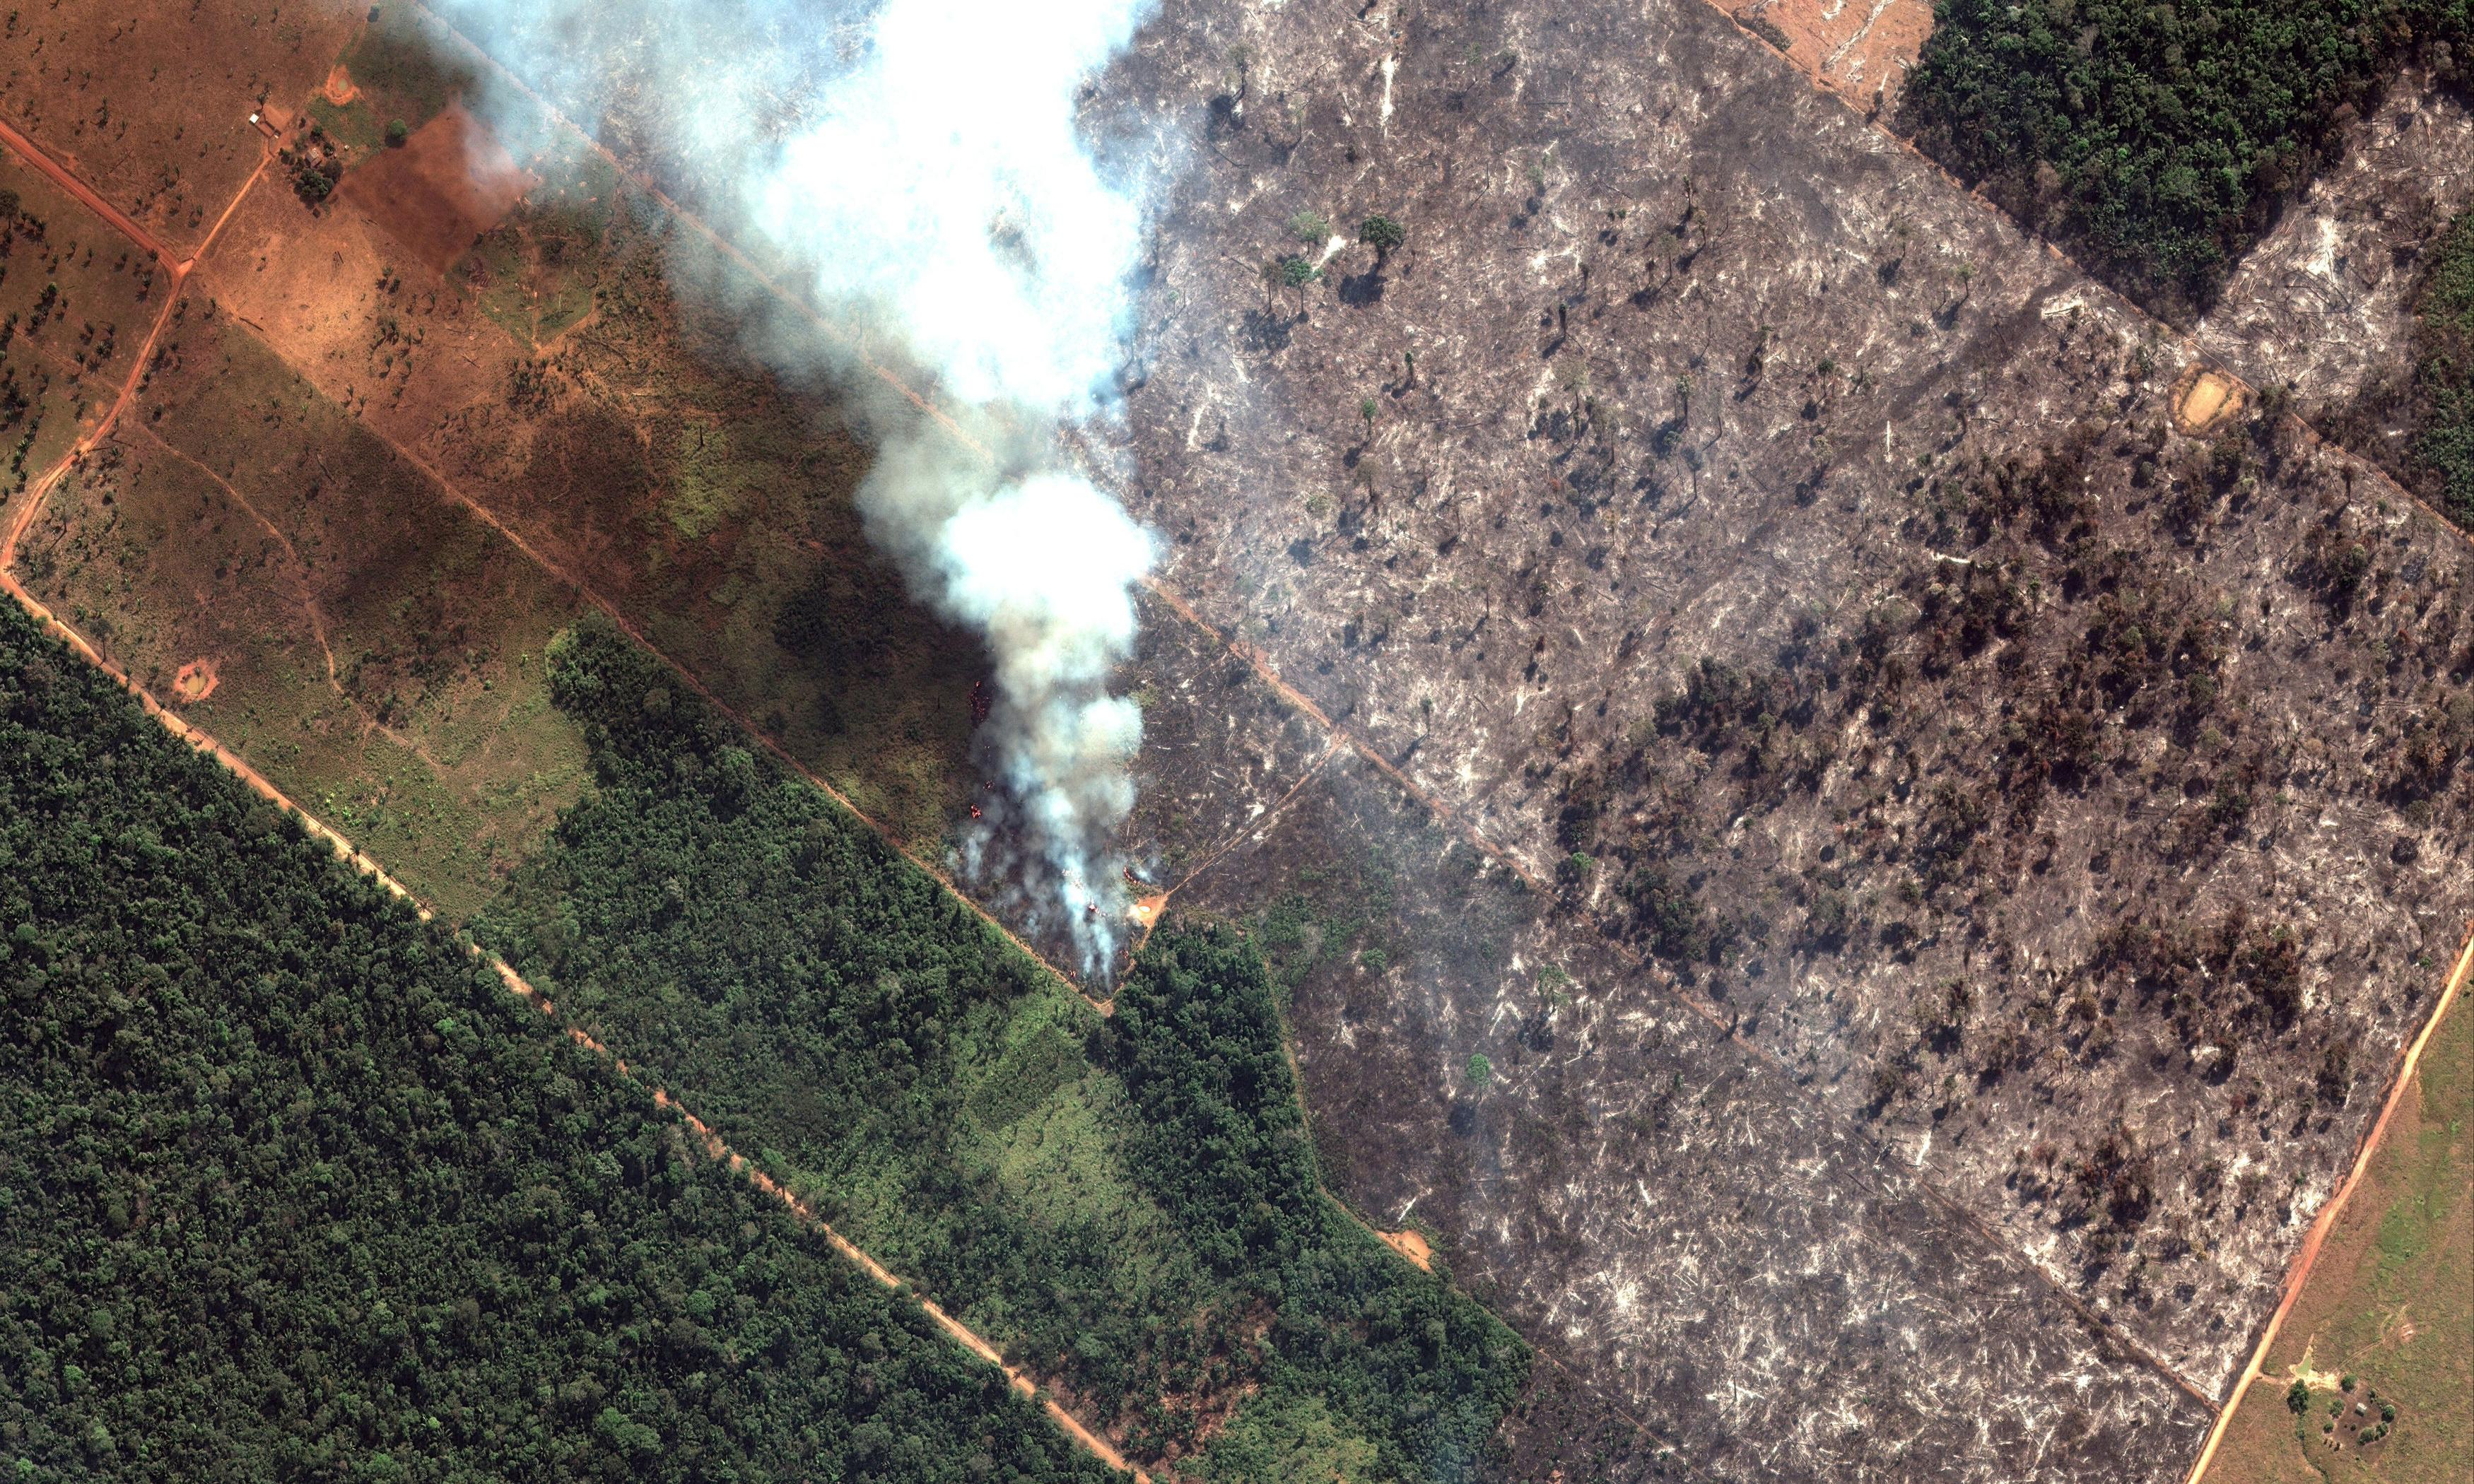 Amazon fires: what is happening and is there anything we can do?